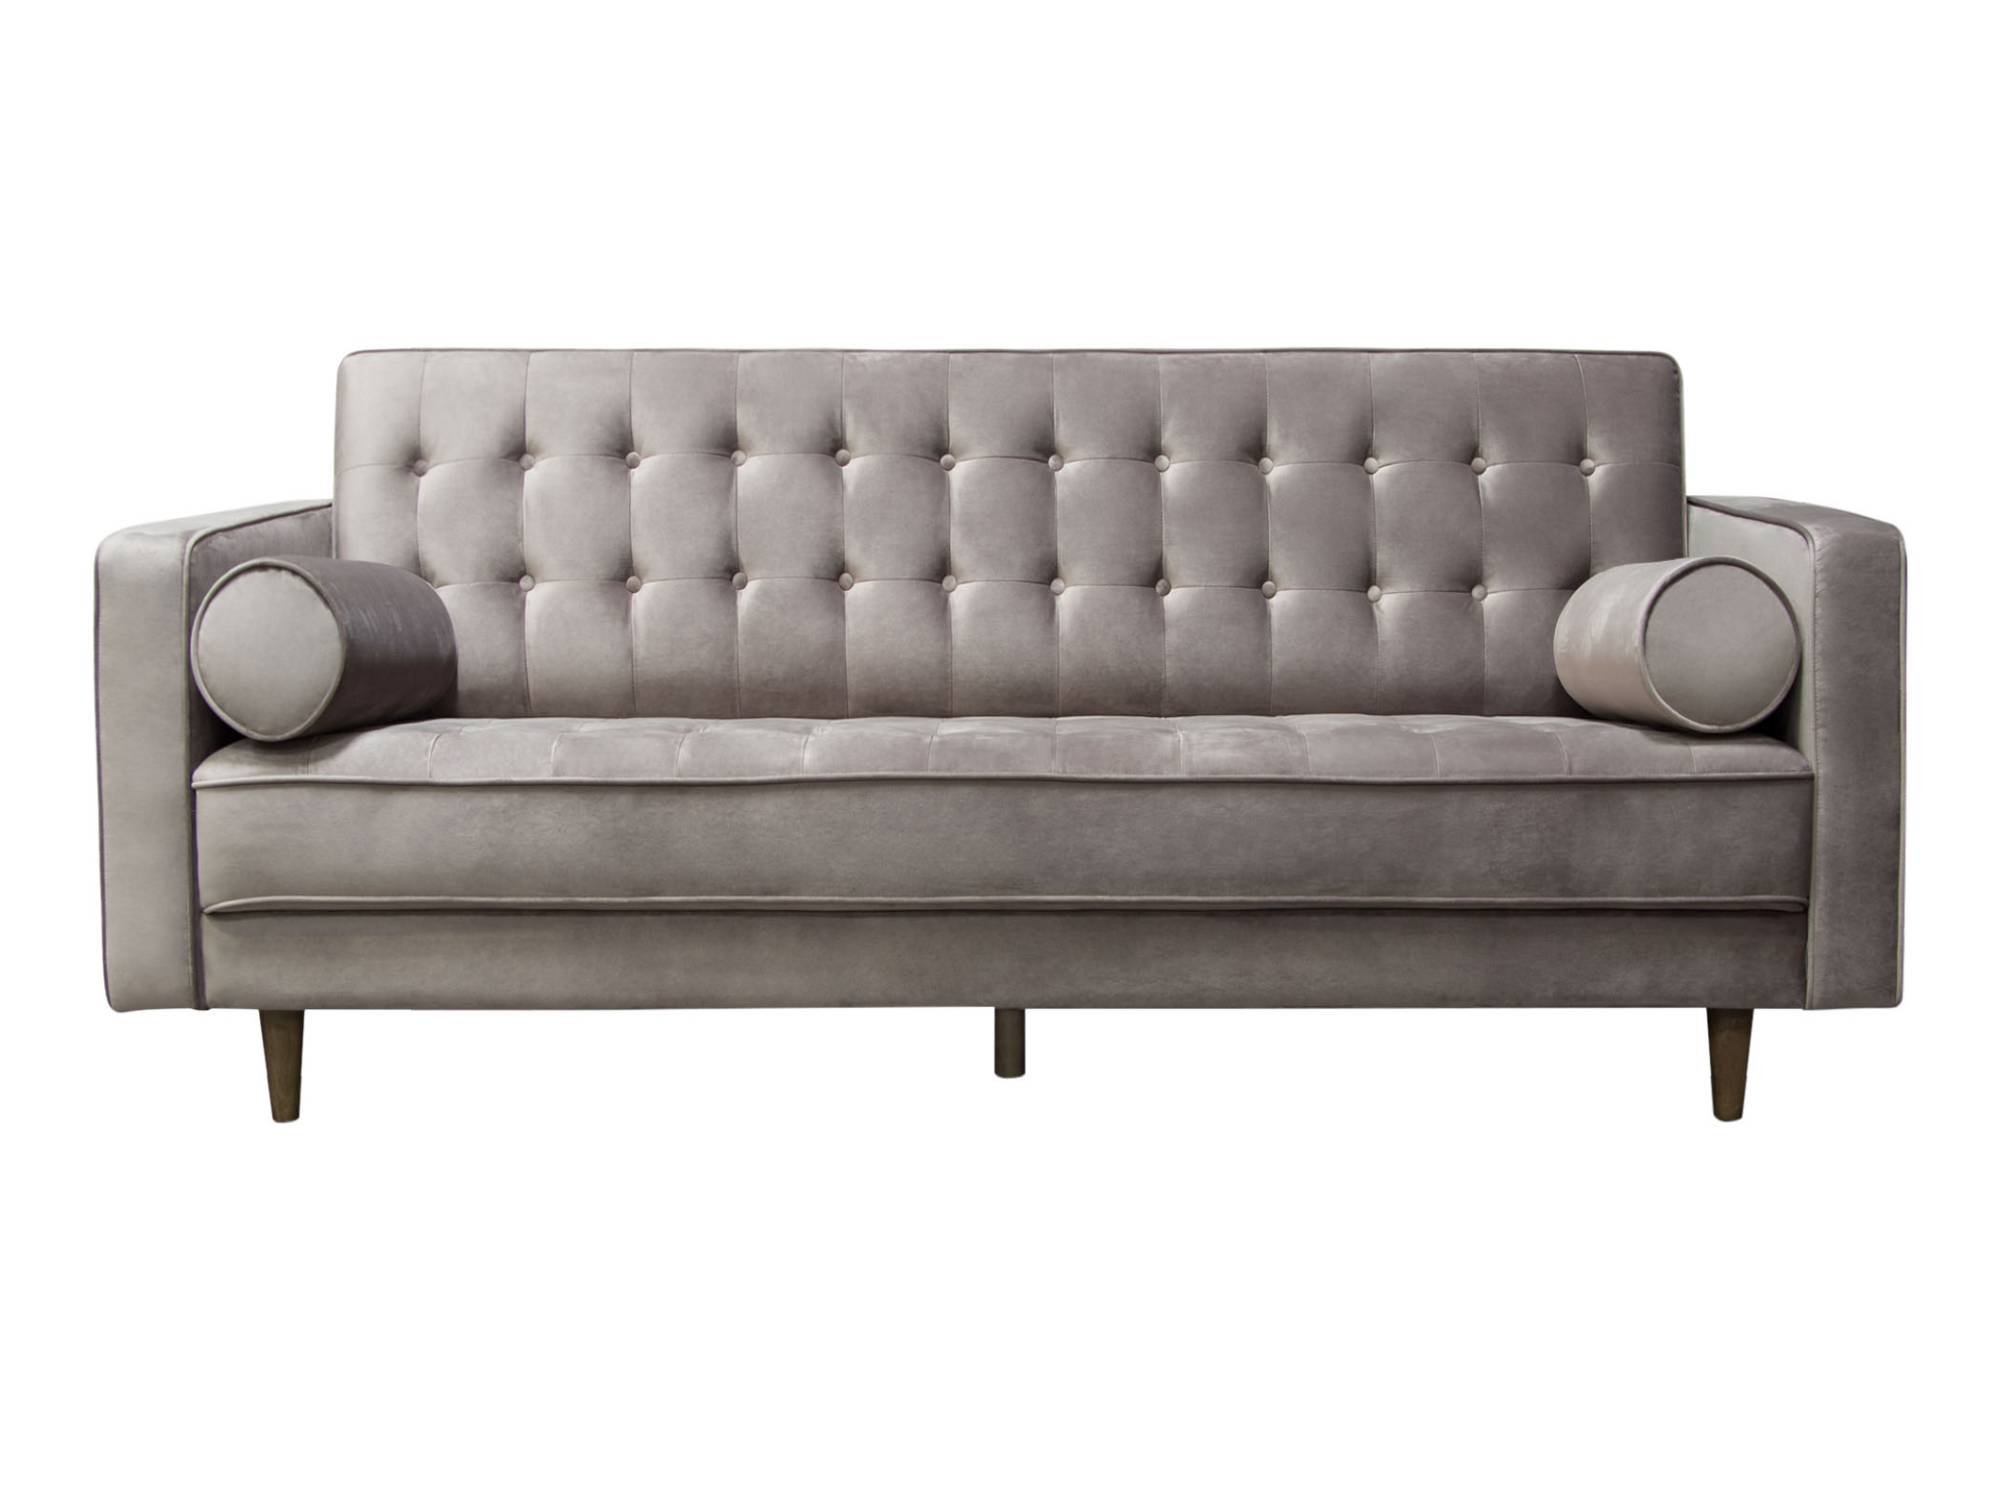 LIVINGSTON SOFA - LIGHT GREY